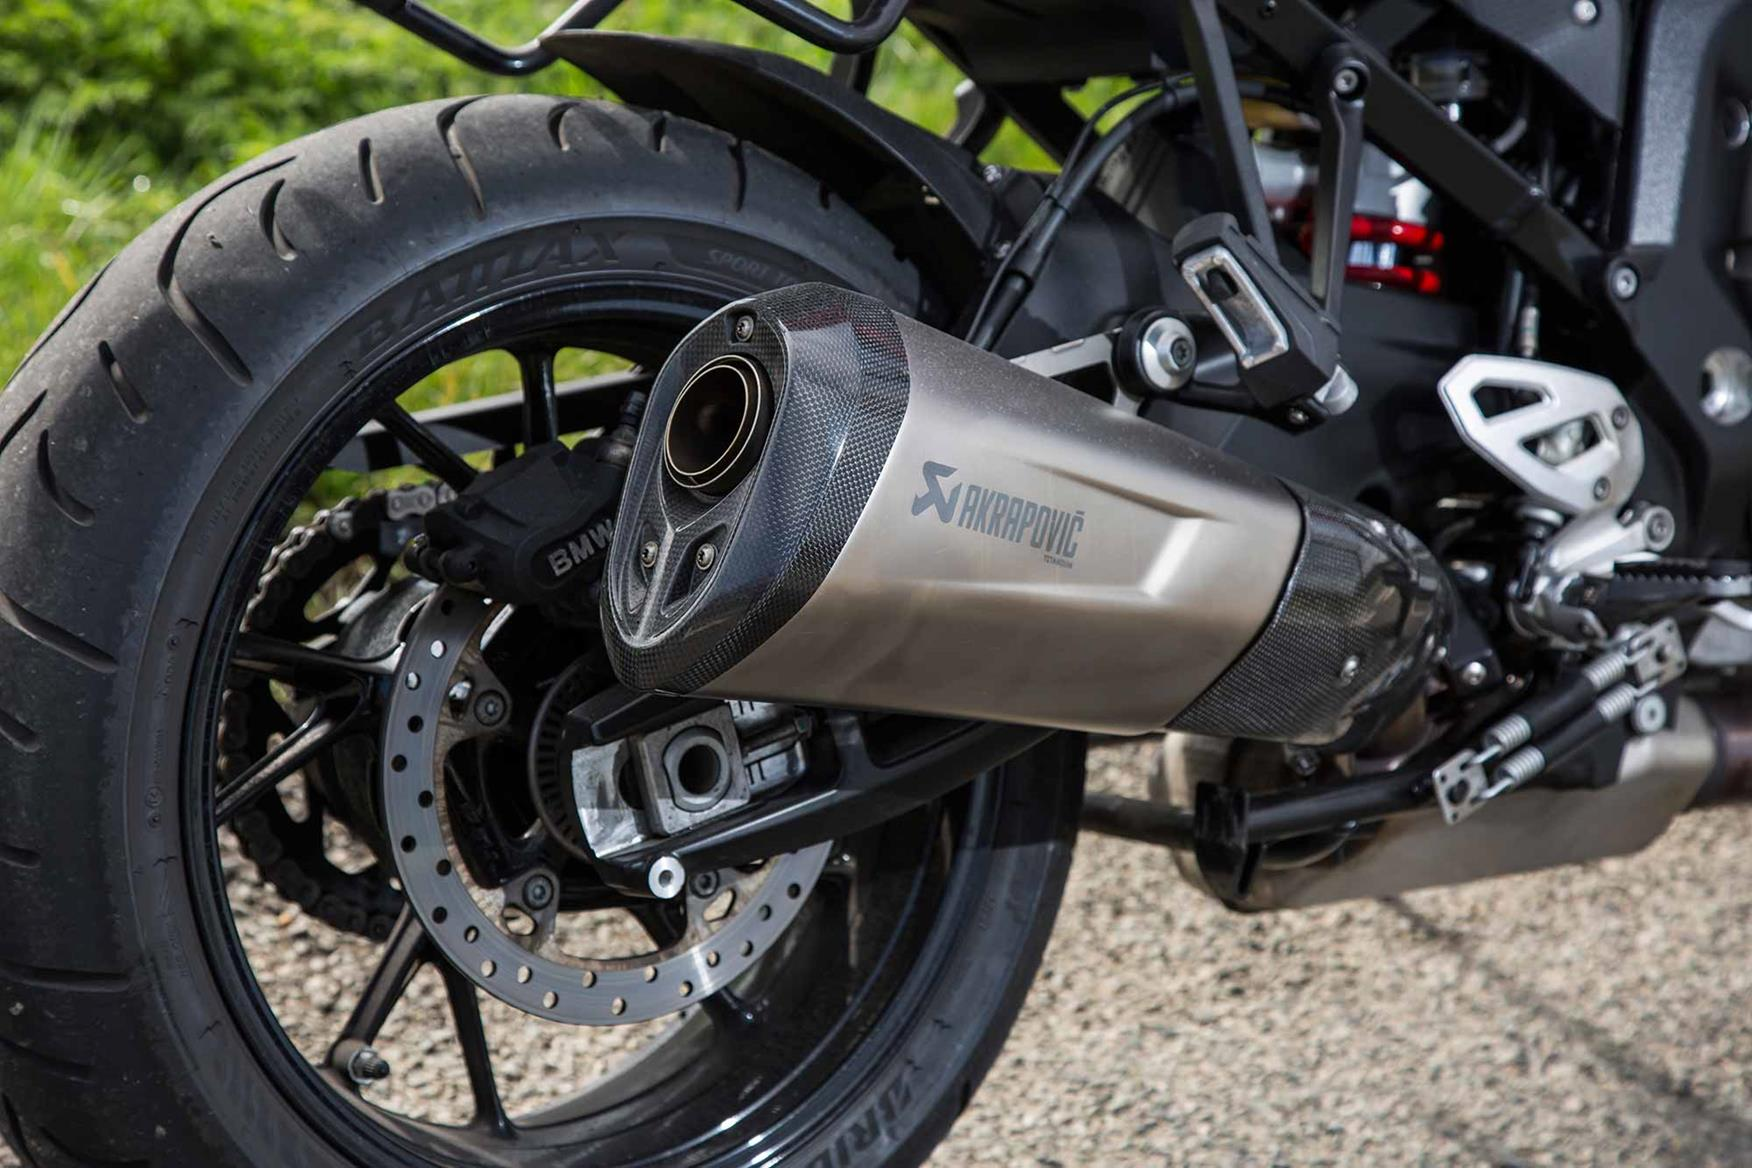 BMW S1000XR (2015-on) Review